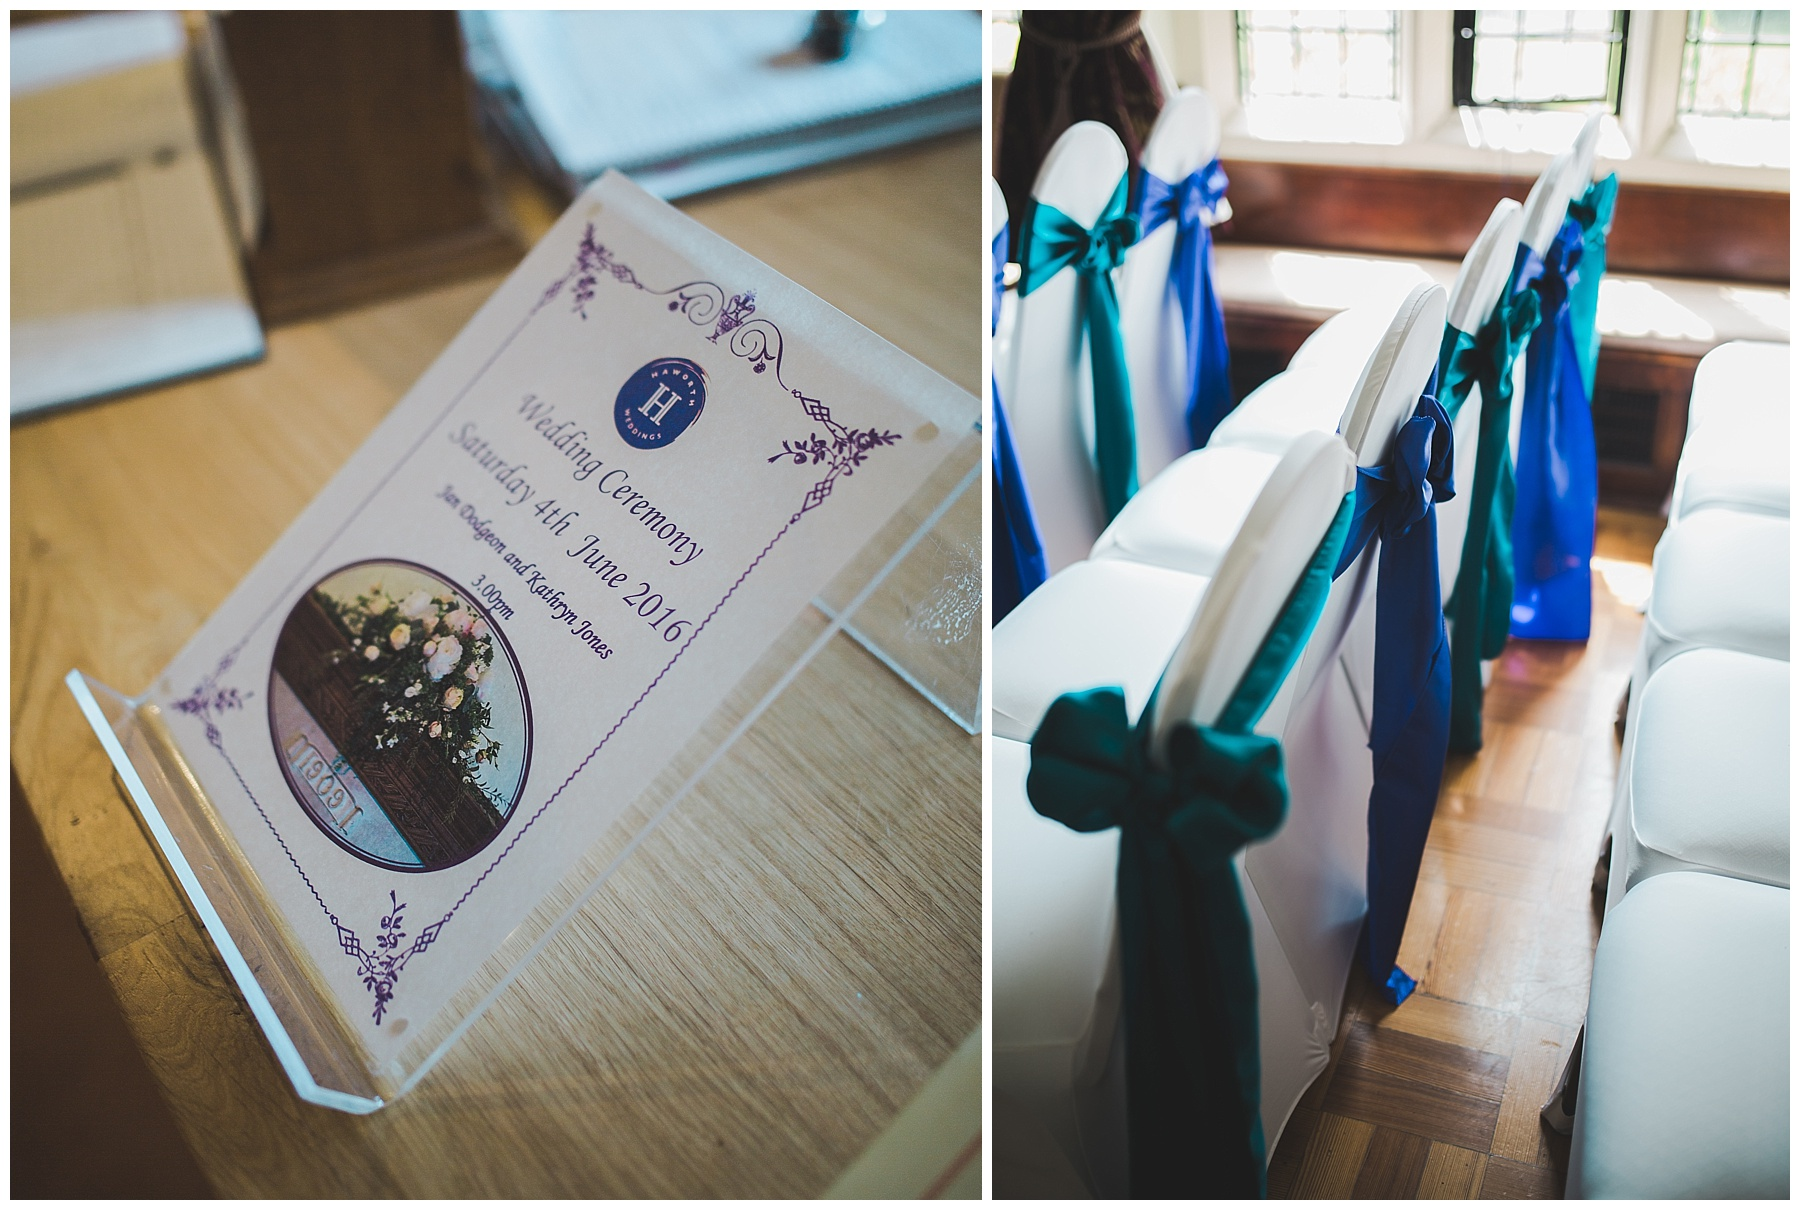 Room decoration details at Haworth Art Gallery wedding